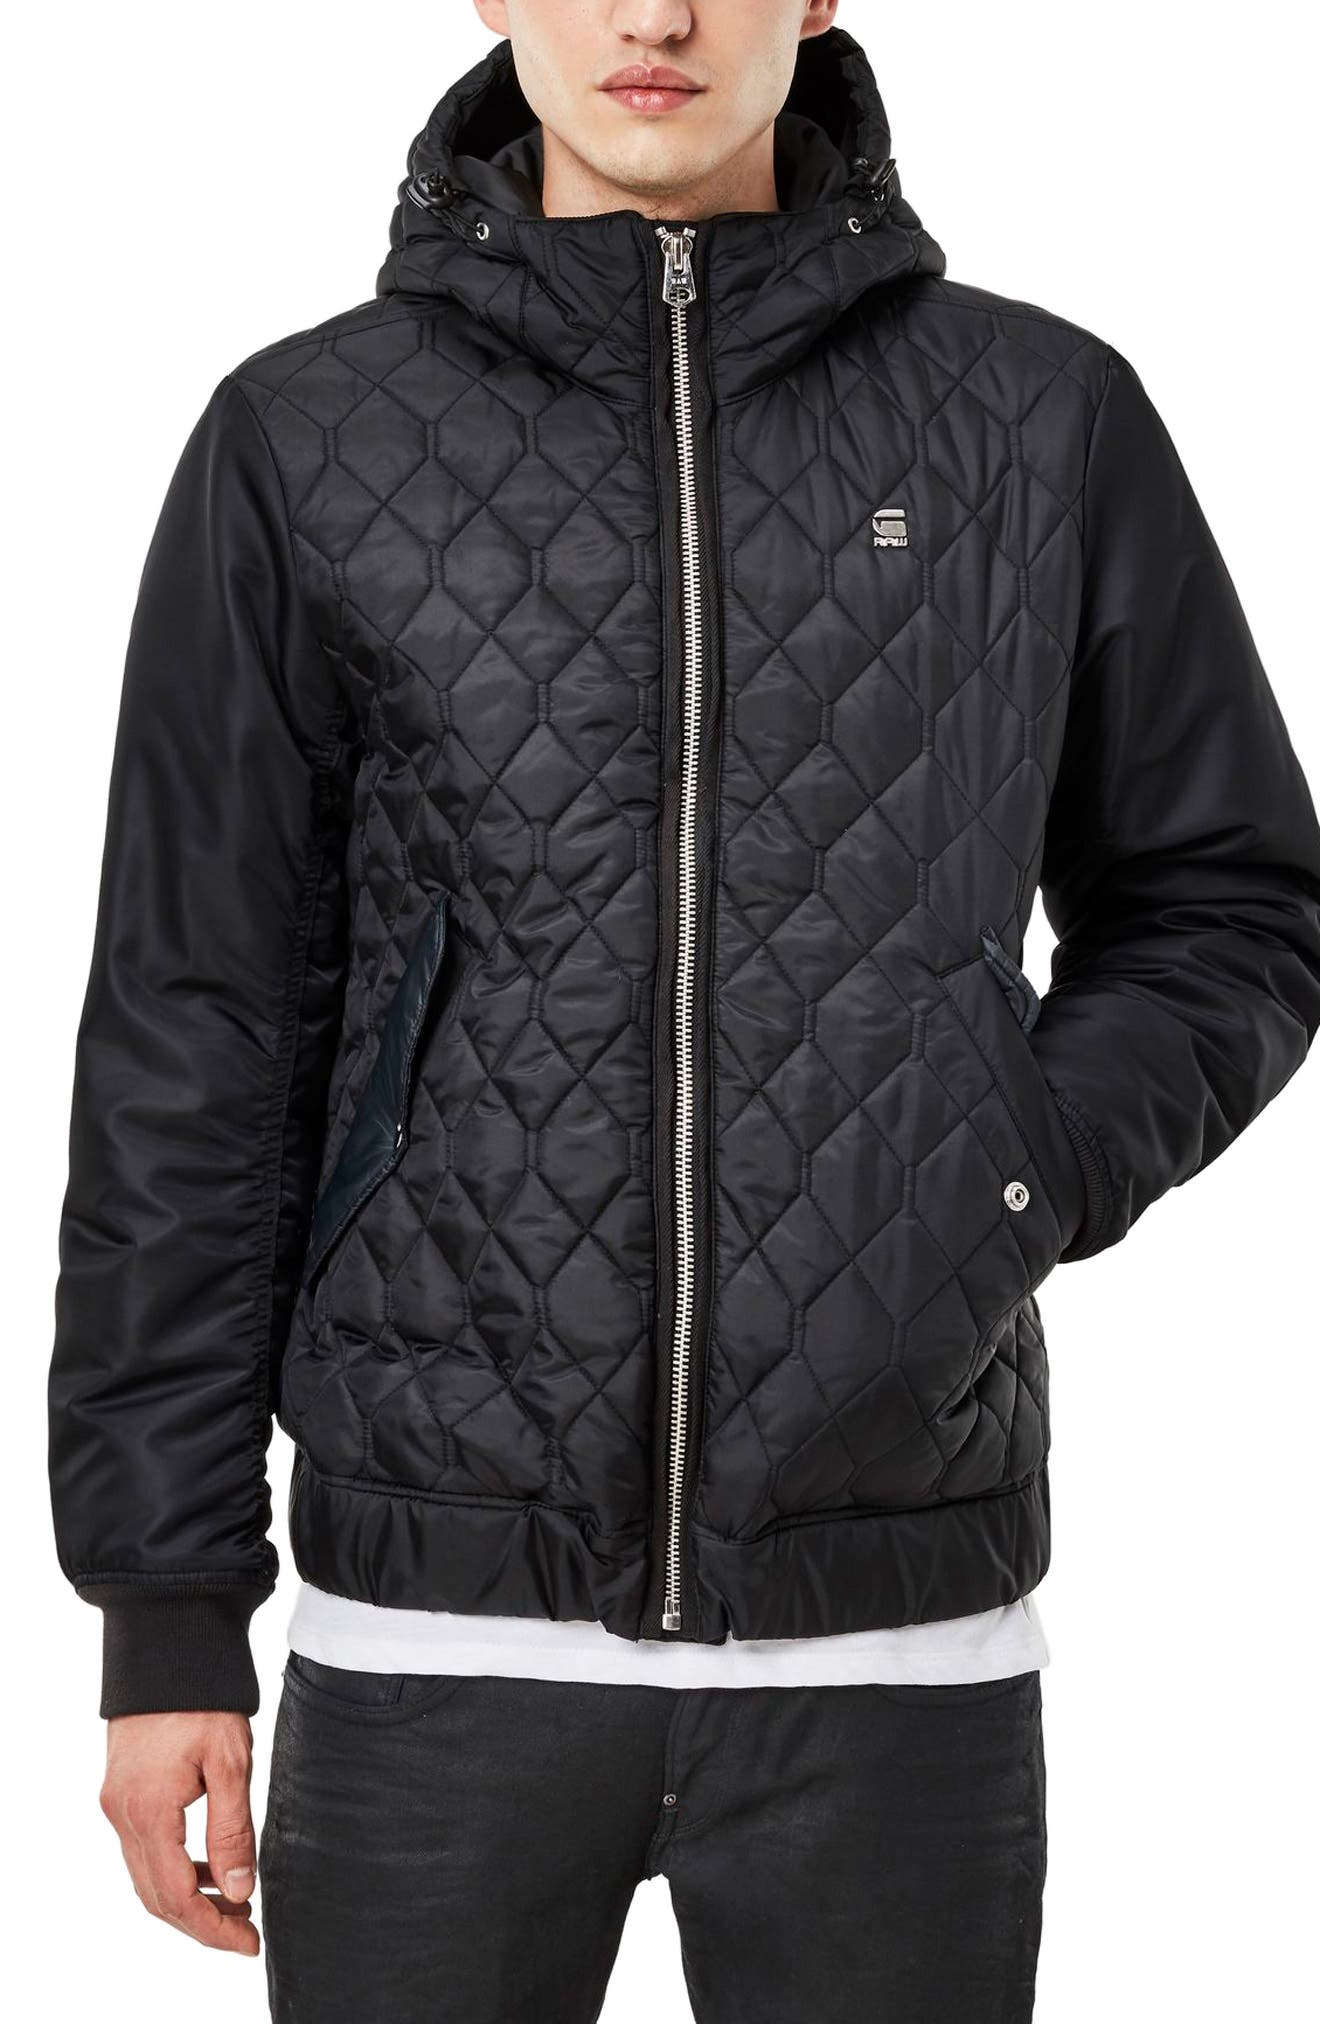 Meefic Hybrid Quilted Jacket,                         Main,                         color, Black